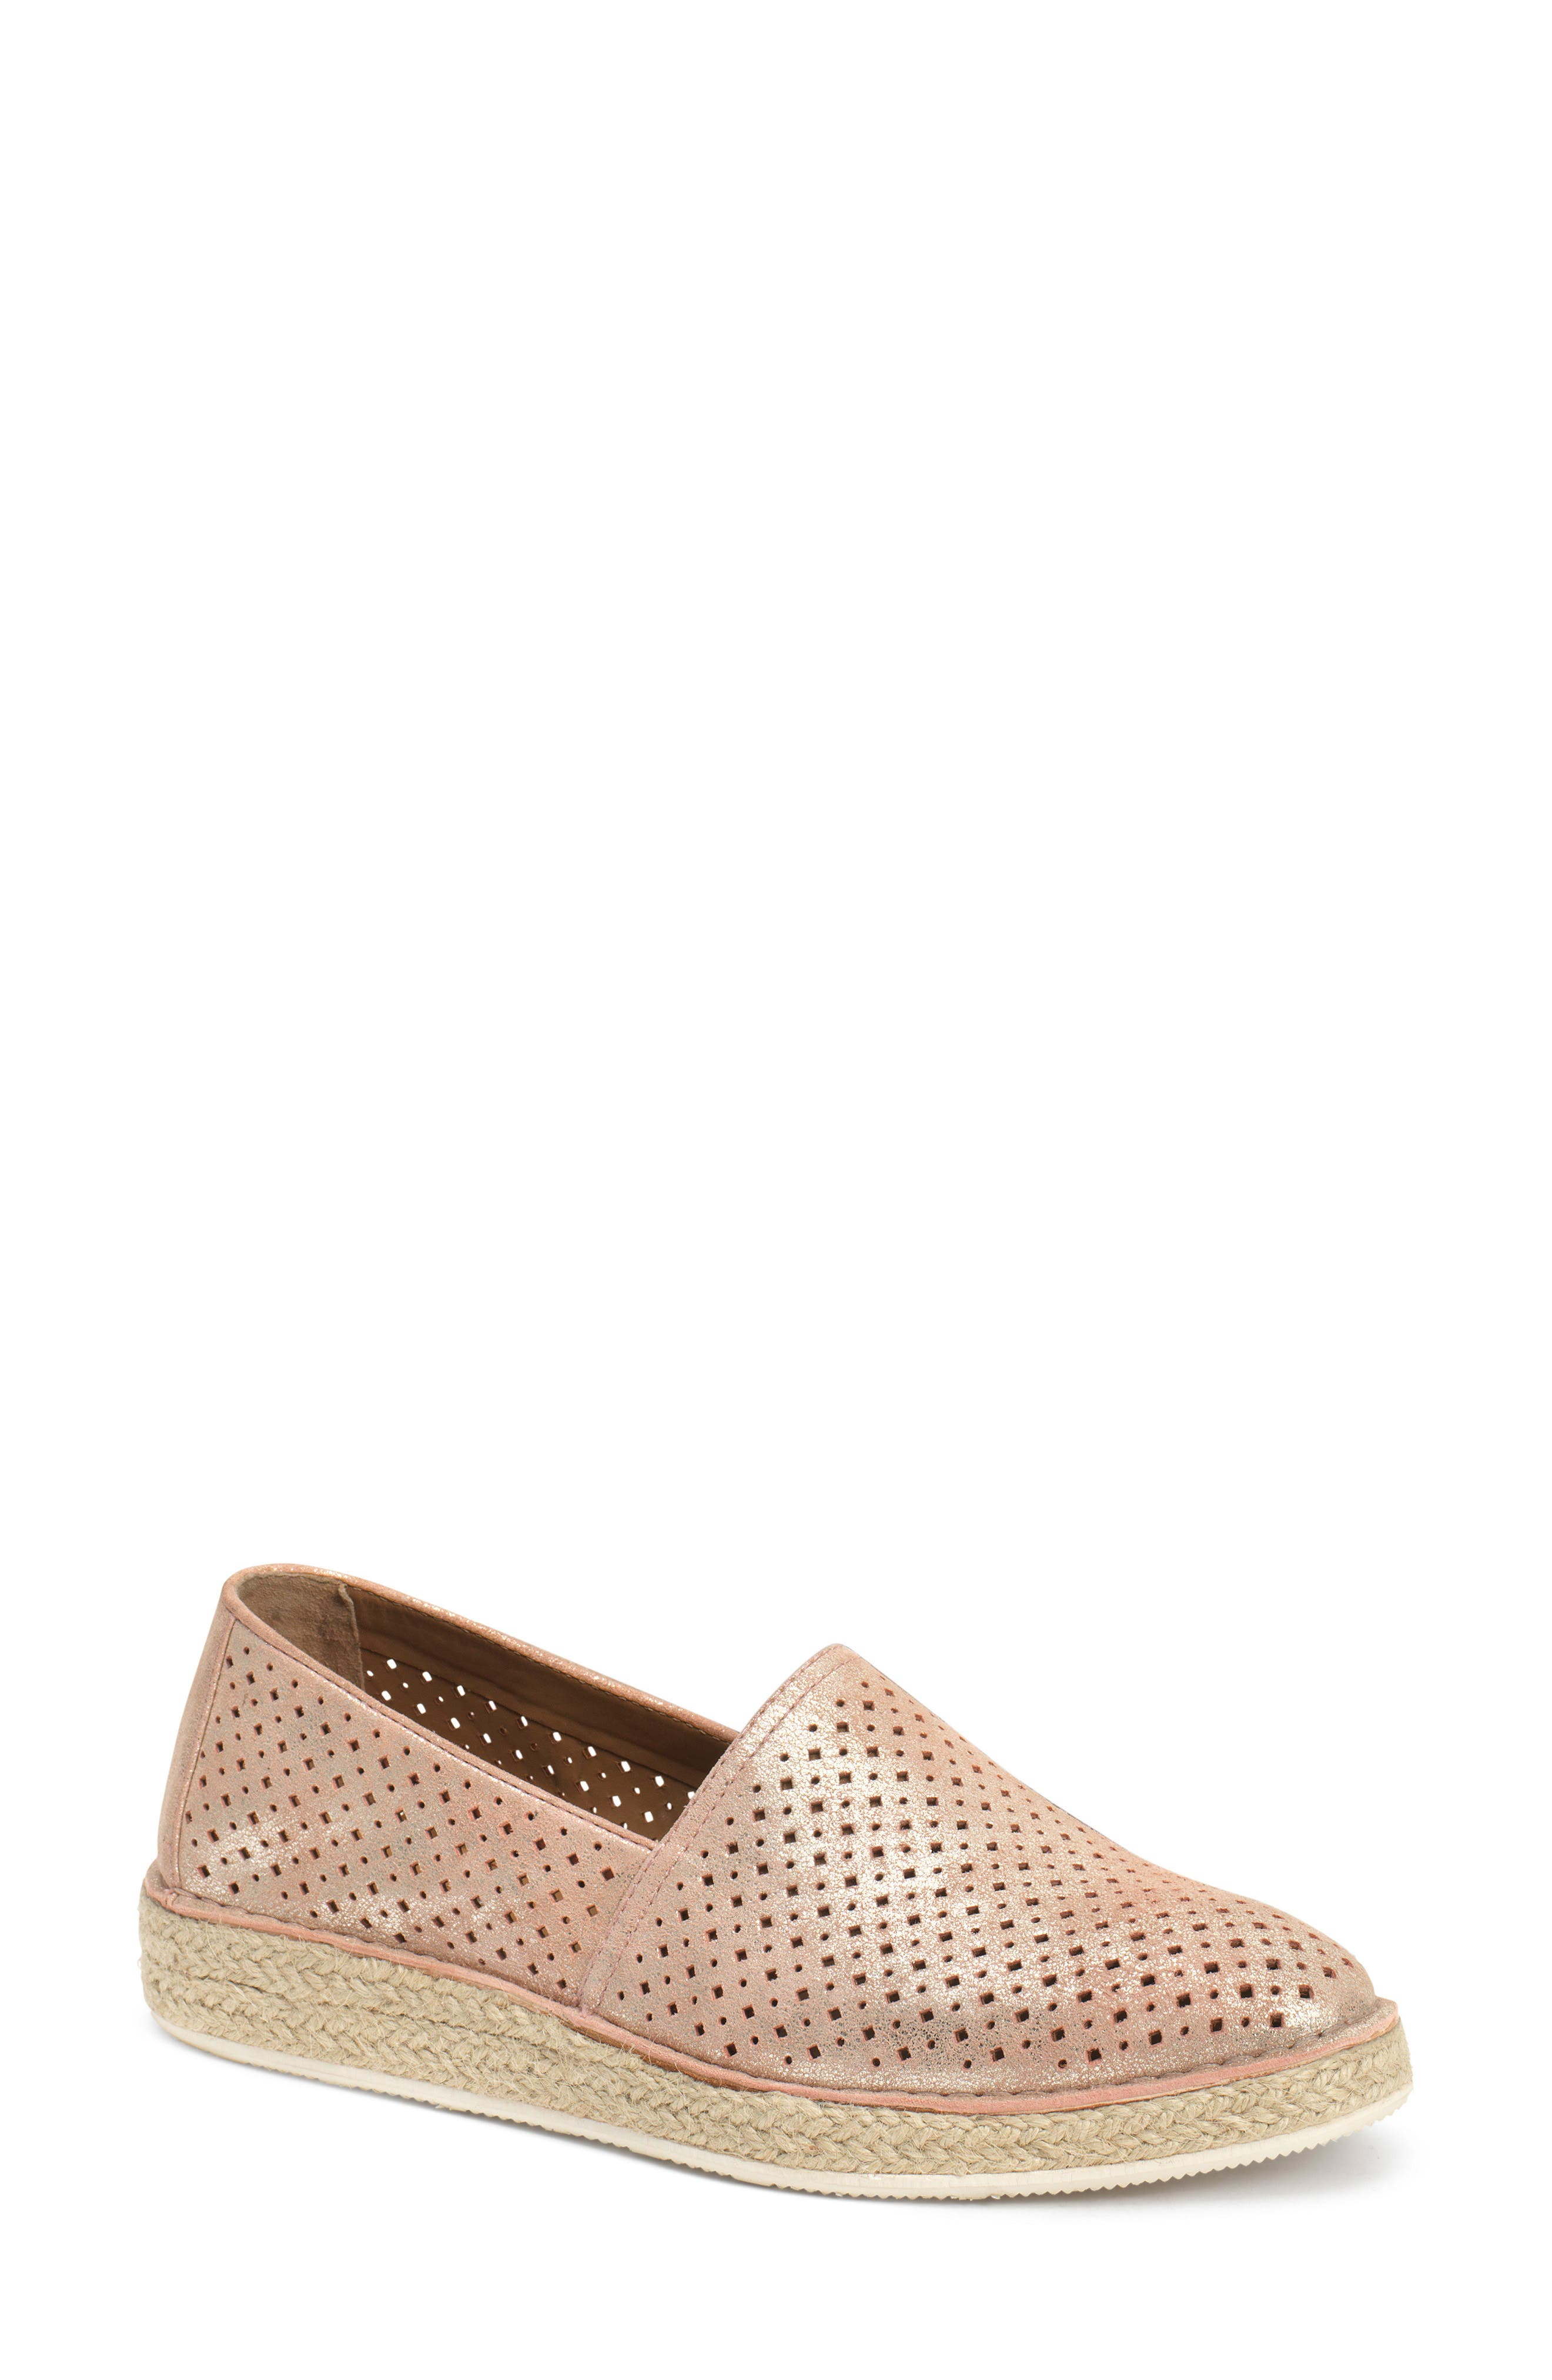 Paige Perforated Flat,                             Main thumbnail 1, color,                             Blush Metallic Suede